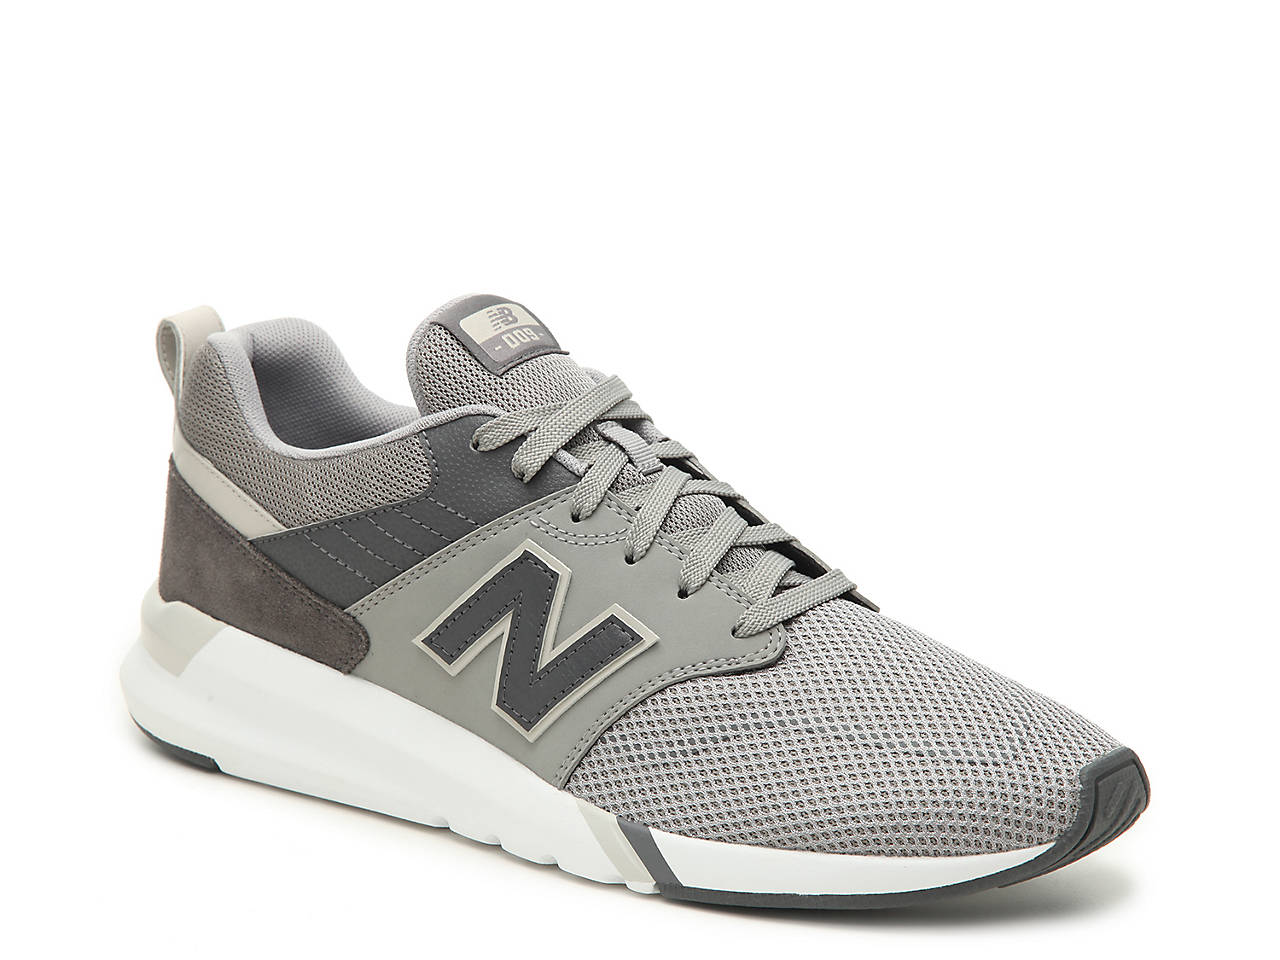 newest 610c5 f222b New Balance 009 Sneaker - Men s Men s Shoes   DSW